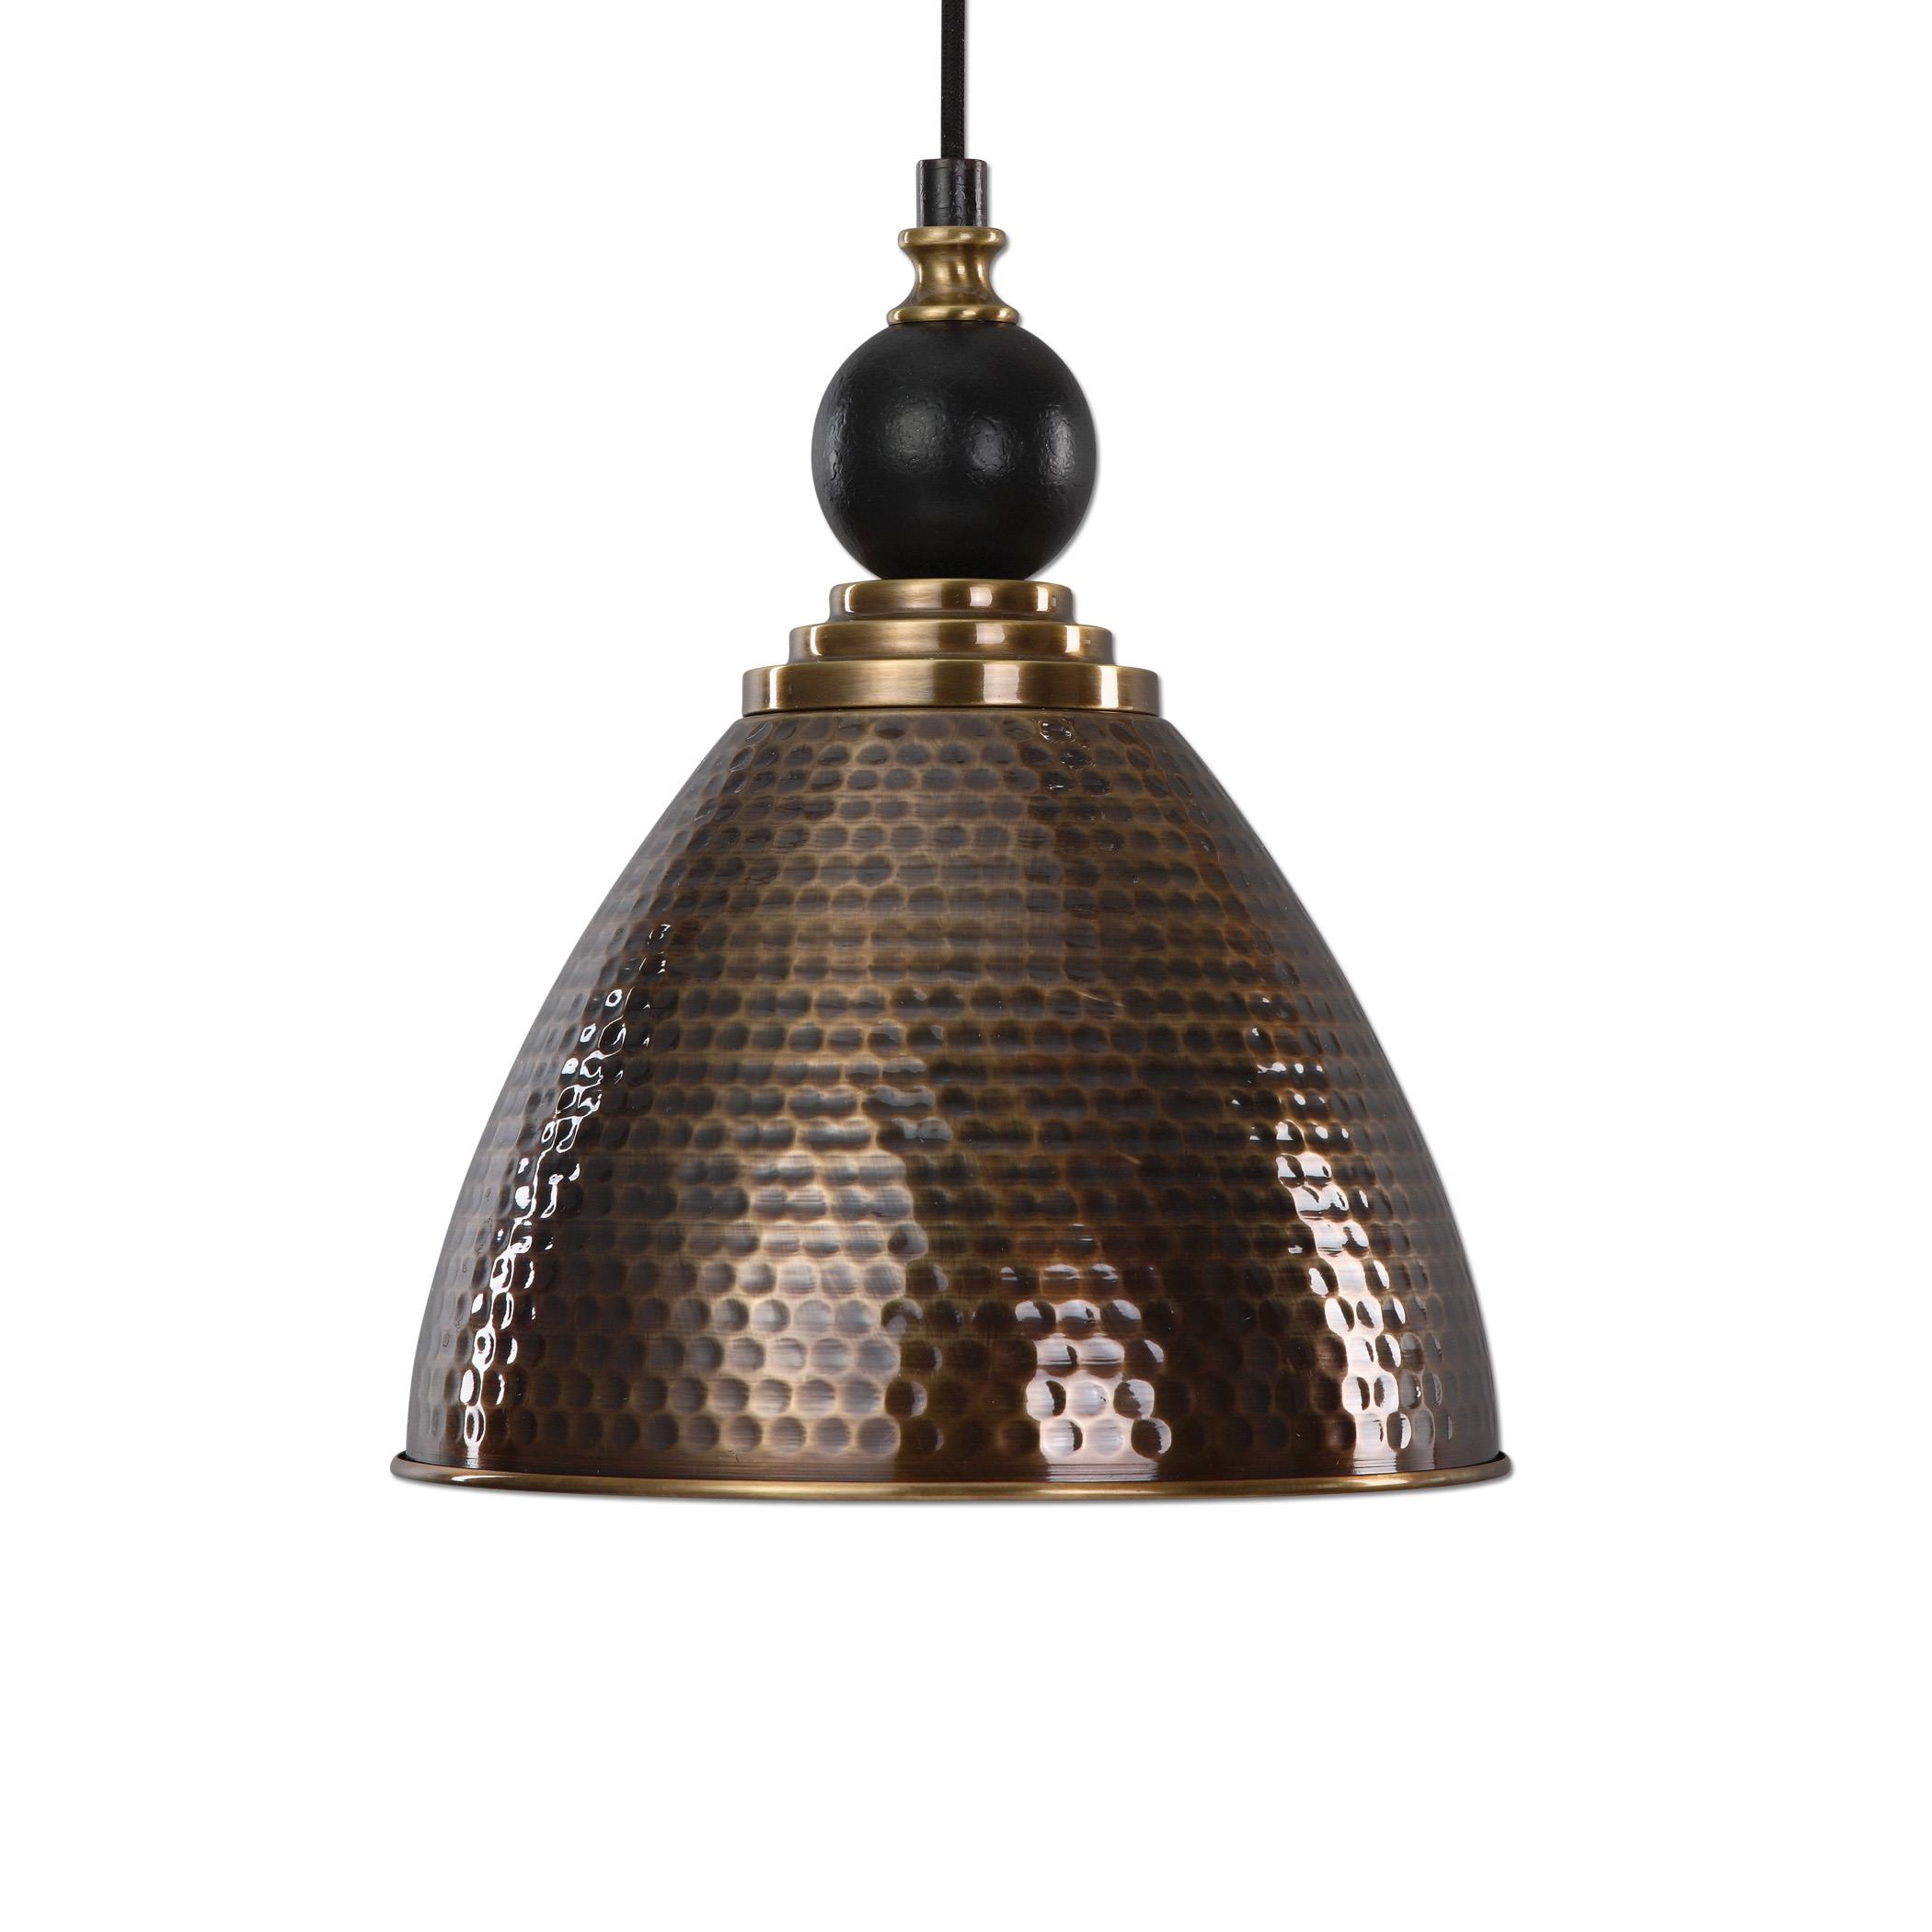 Uttermost Lighting Fixtures Adastra 1 Light Antique Brass Pendant - Item Number: 22052